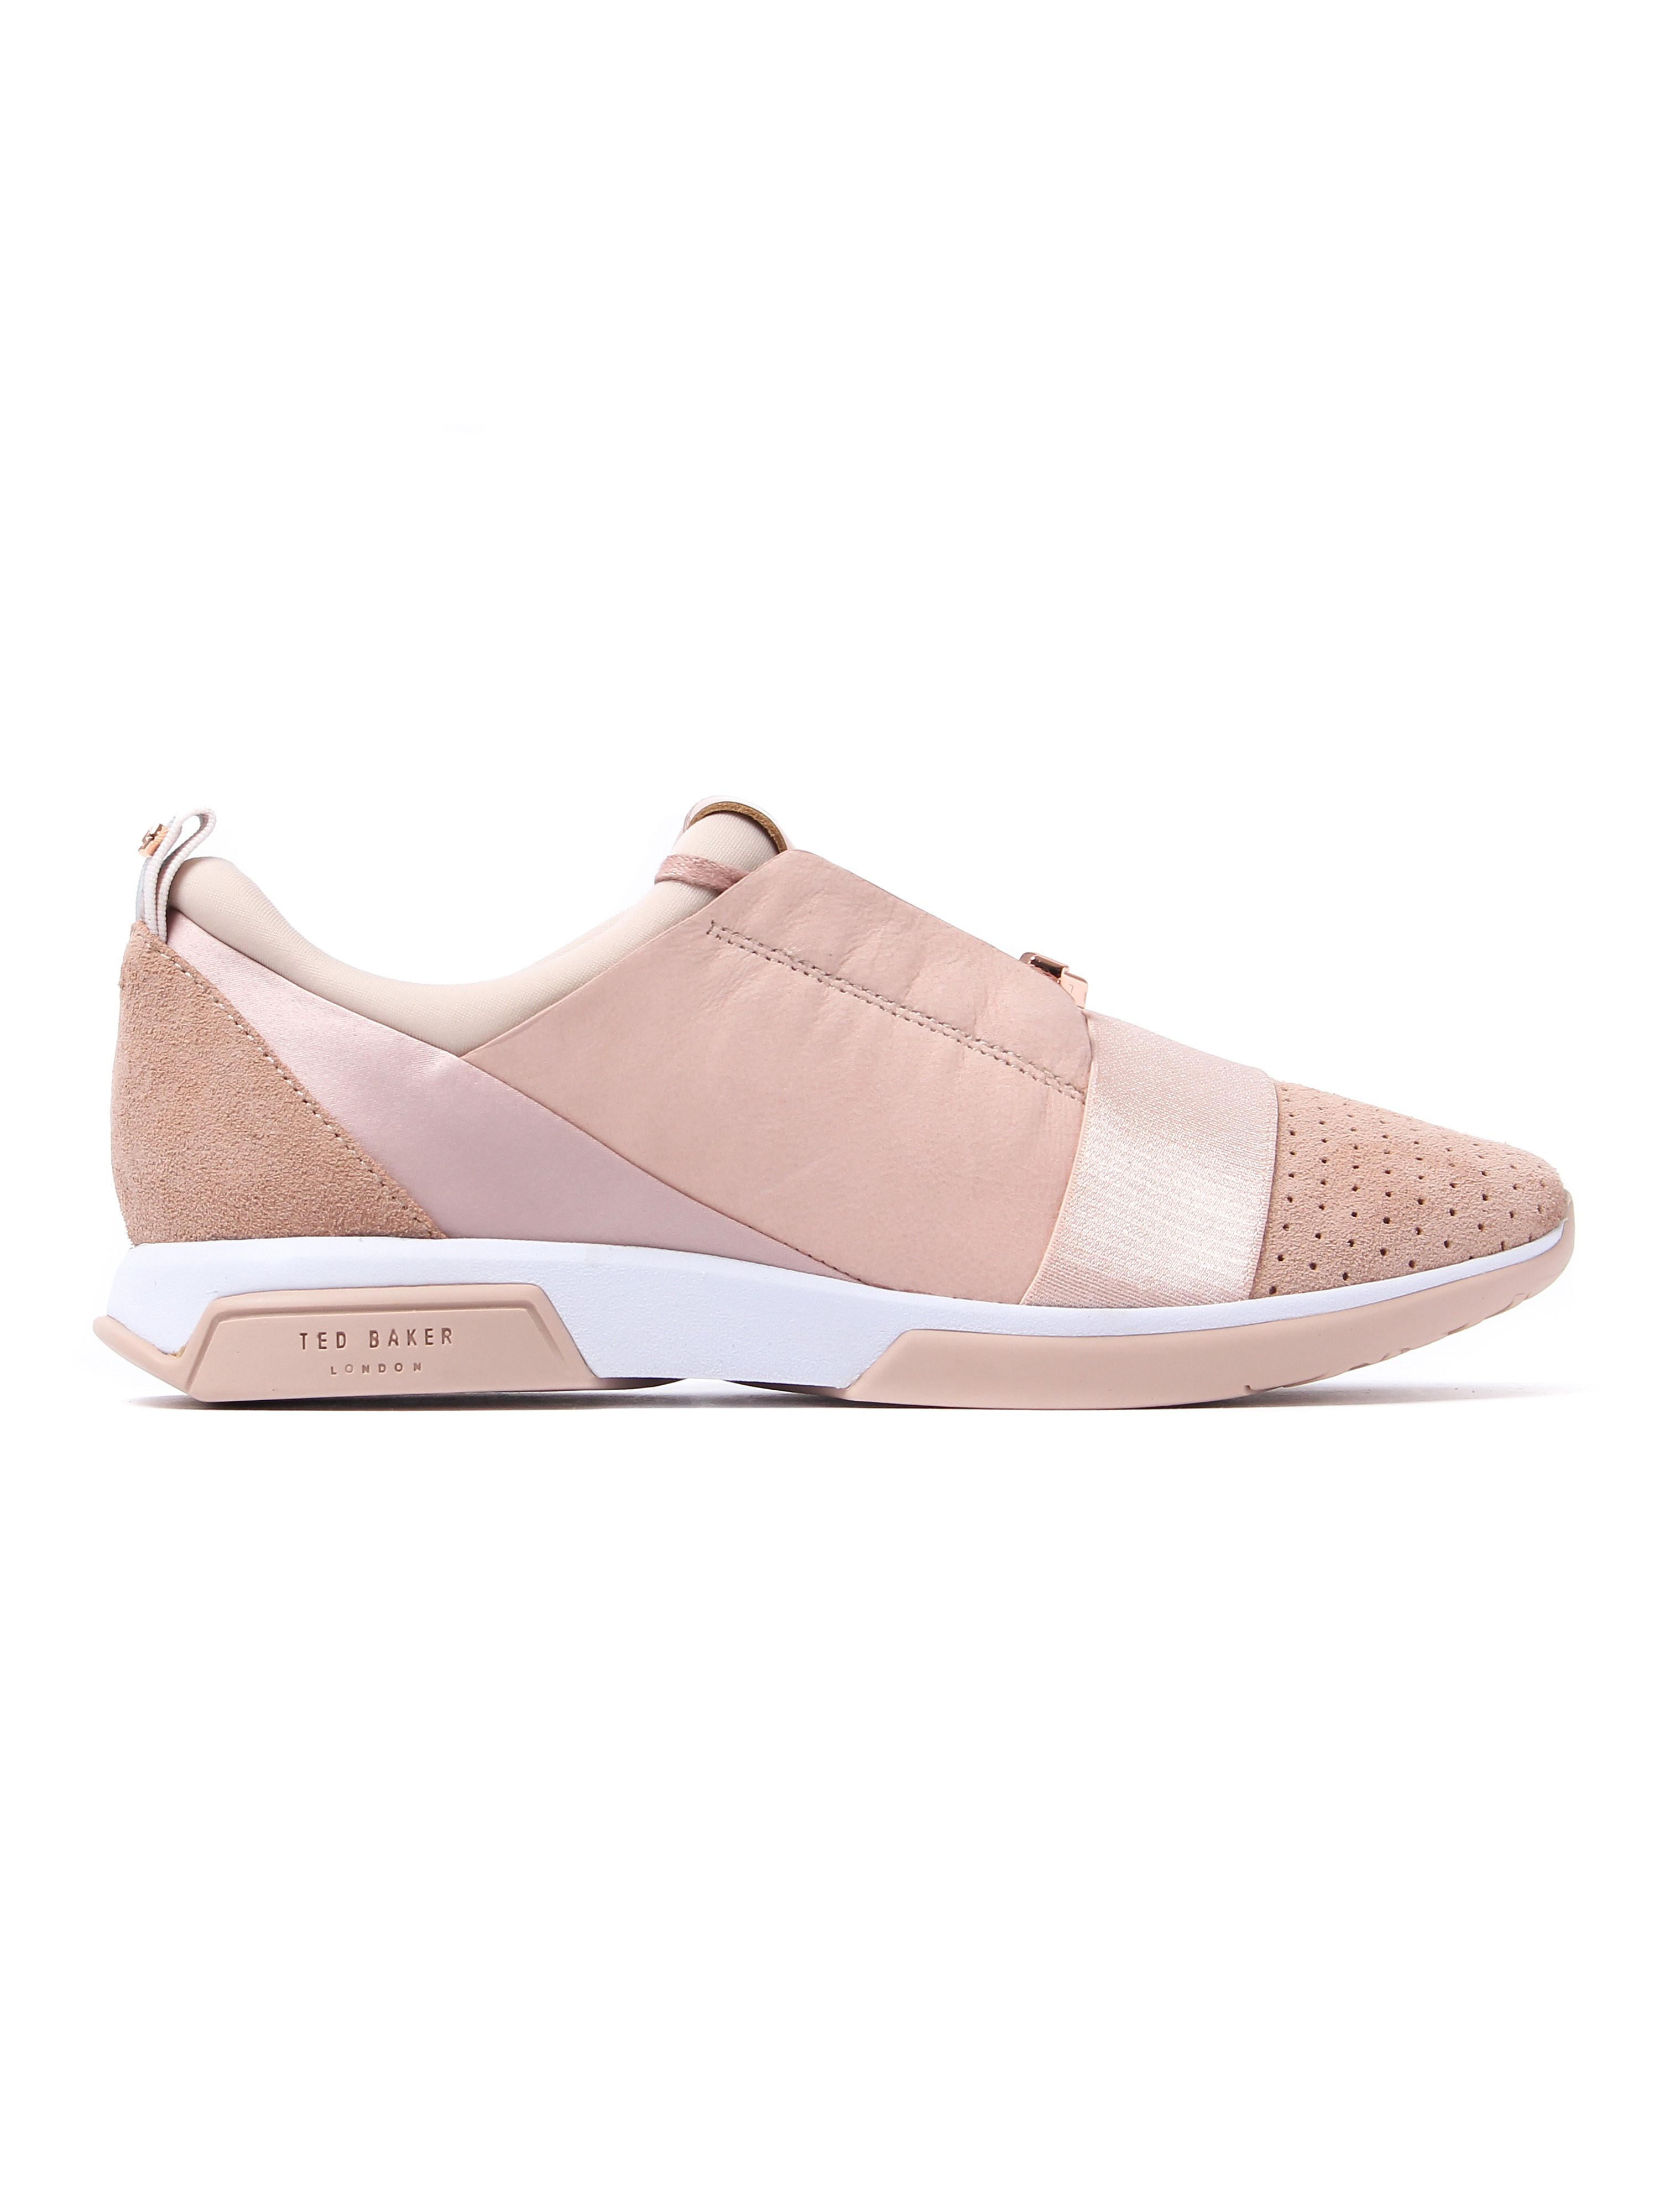 Ted Baker Women's Cepa Trainers - Light Pink